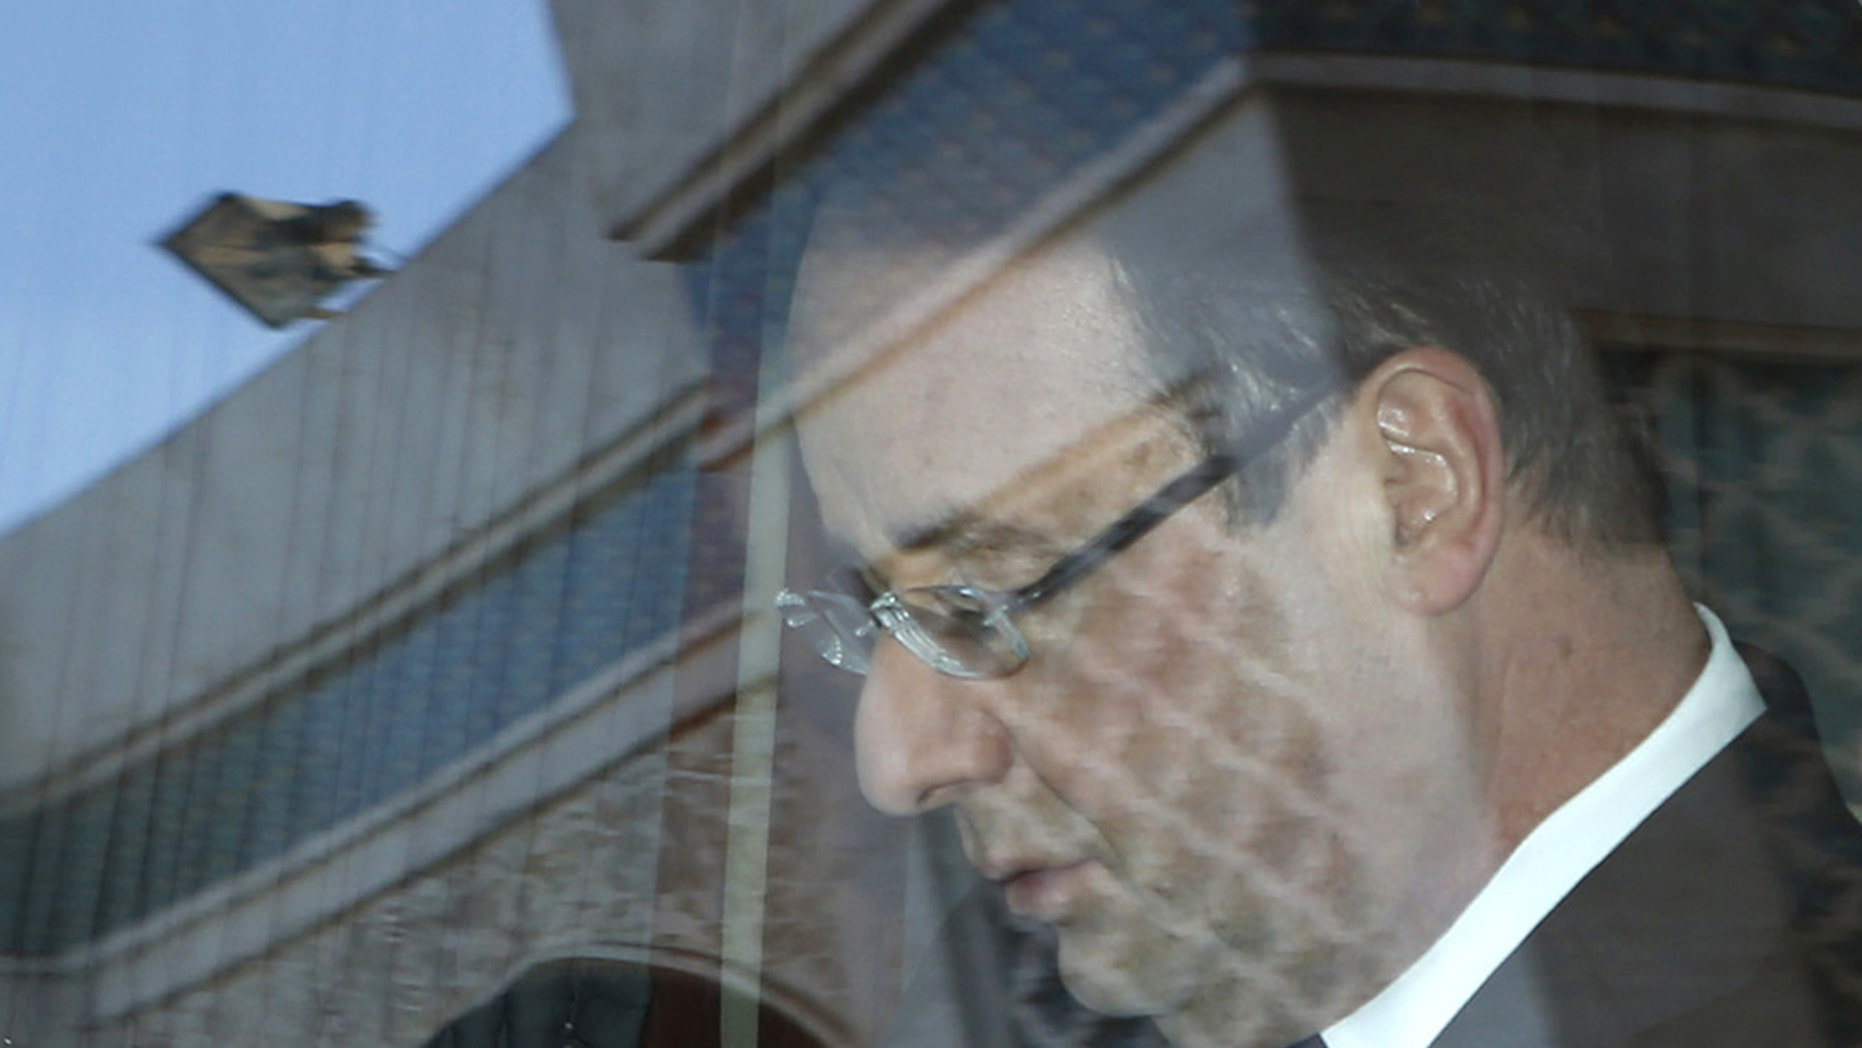 French President Francois Hollande looks at his mobile phone as he sits in a limousine after visiting the Hassan II mosque in Casablanca, Morocco Thursday, April 4, 2013. French President Hollande is on the  second-day of a state visit to Morocco. (AP Photo/Youssef Boudlal/Pool)